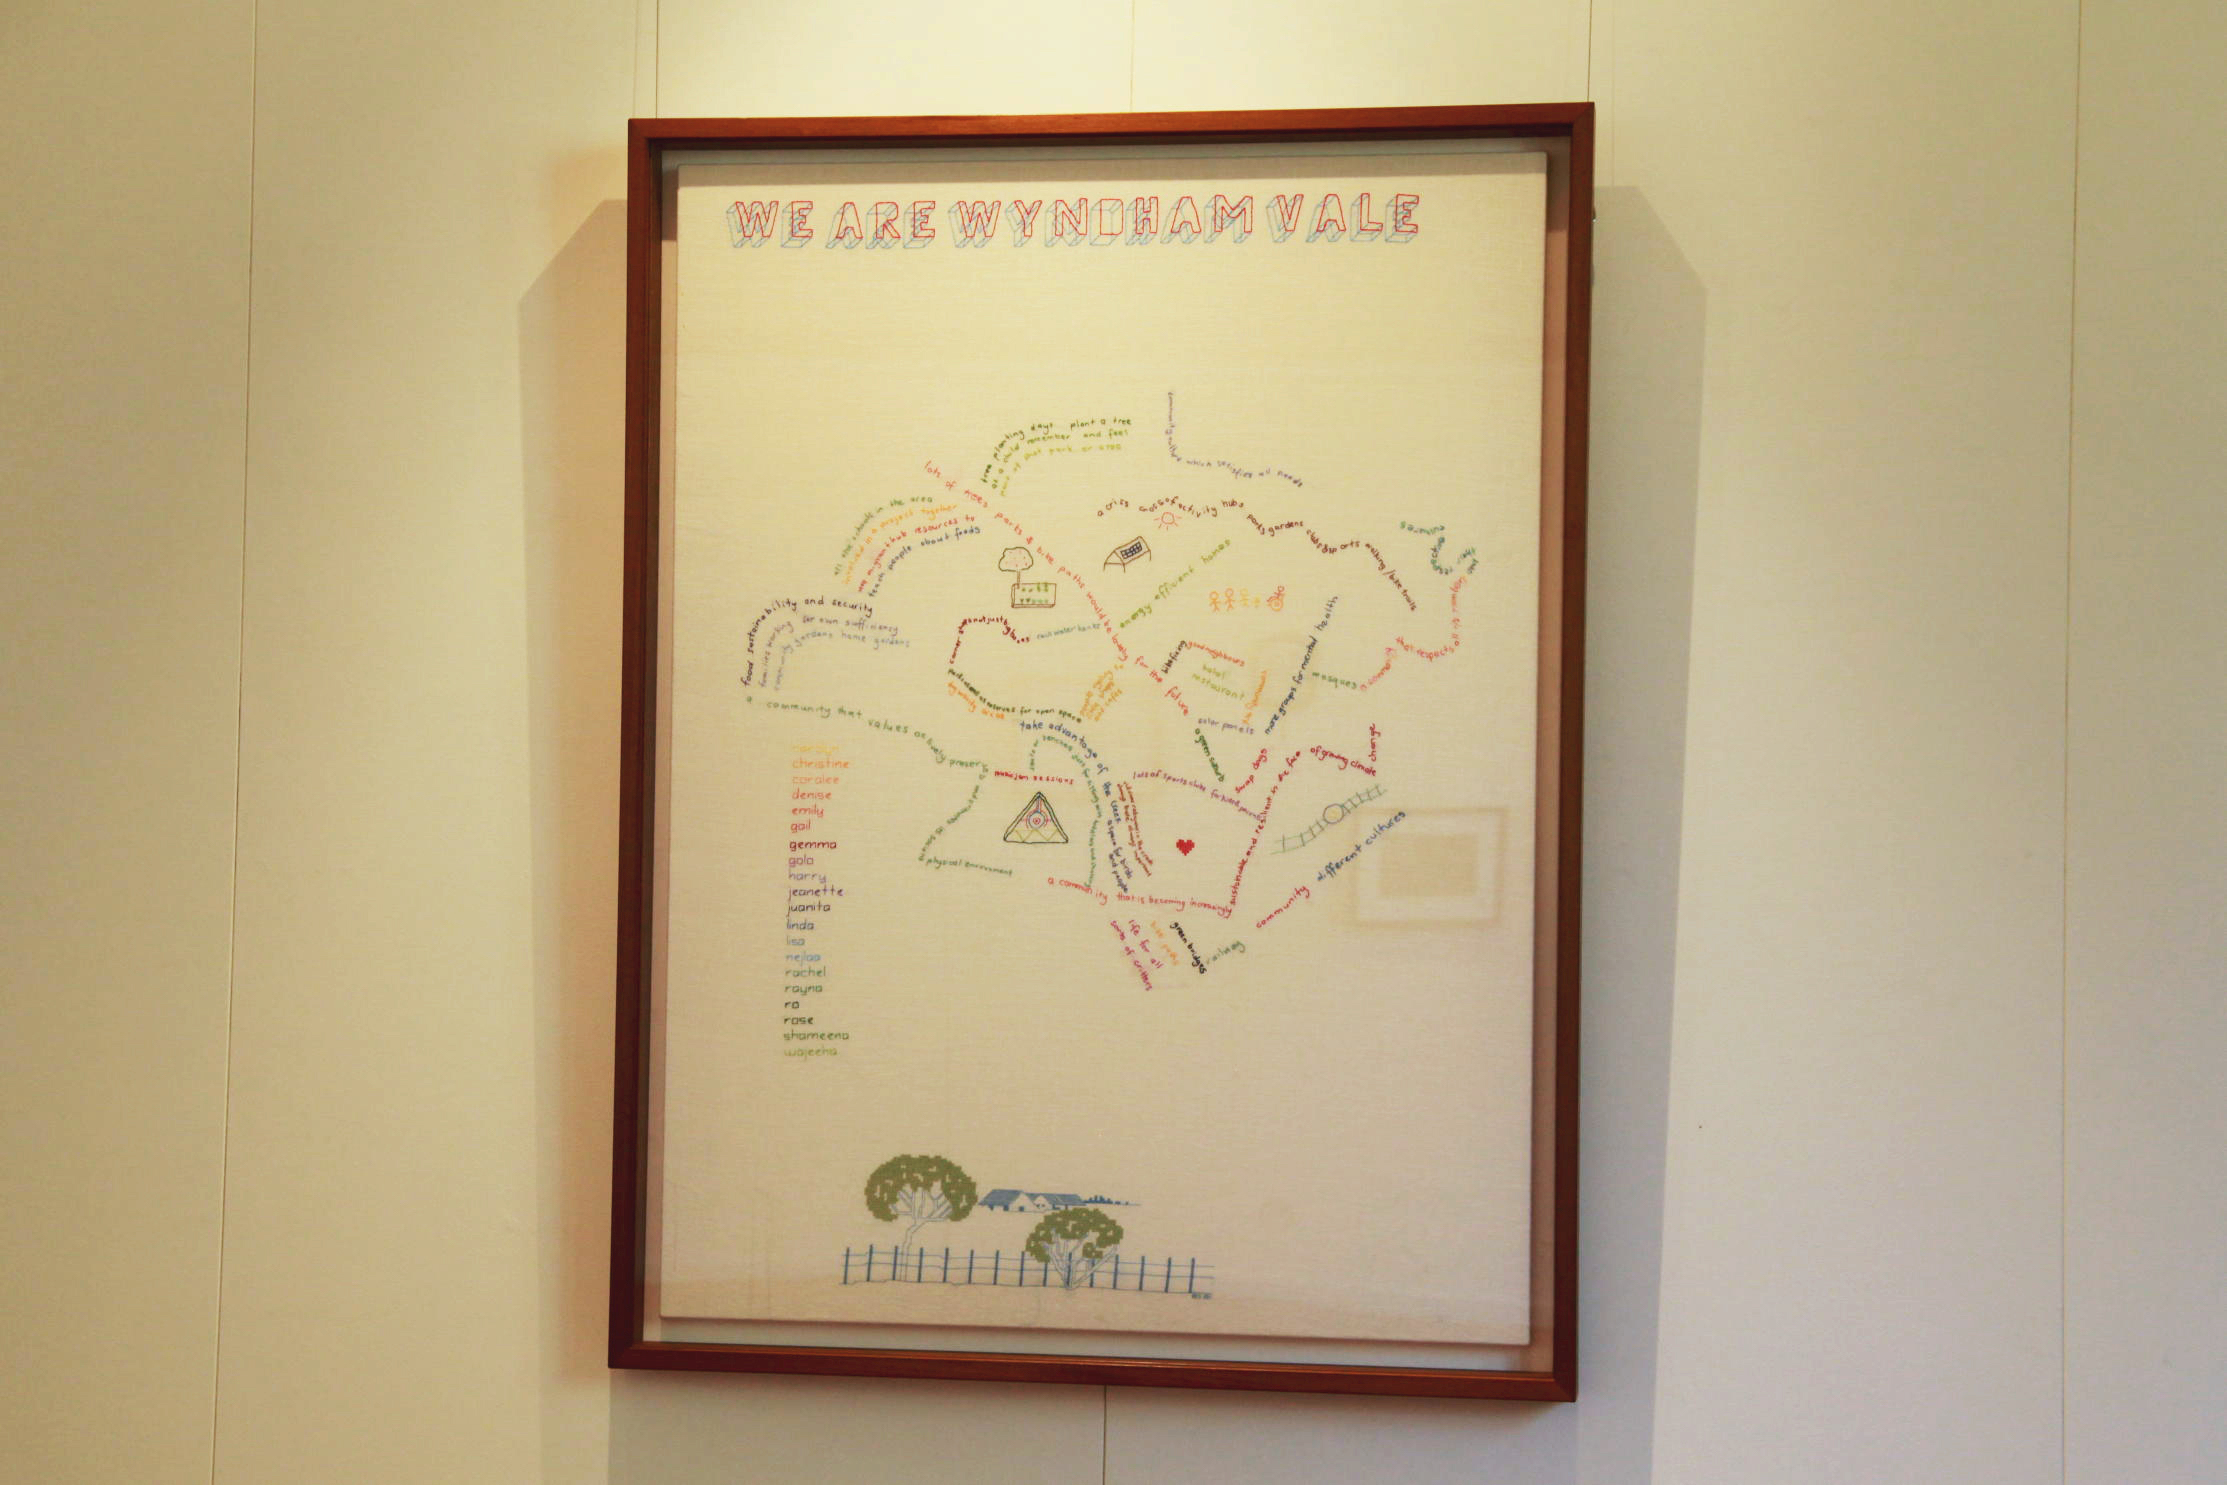 WE Are Wyndham Vale framed embroidery project